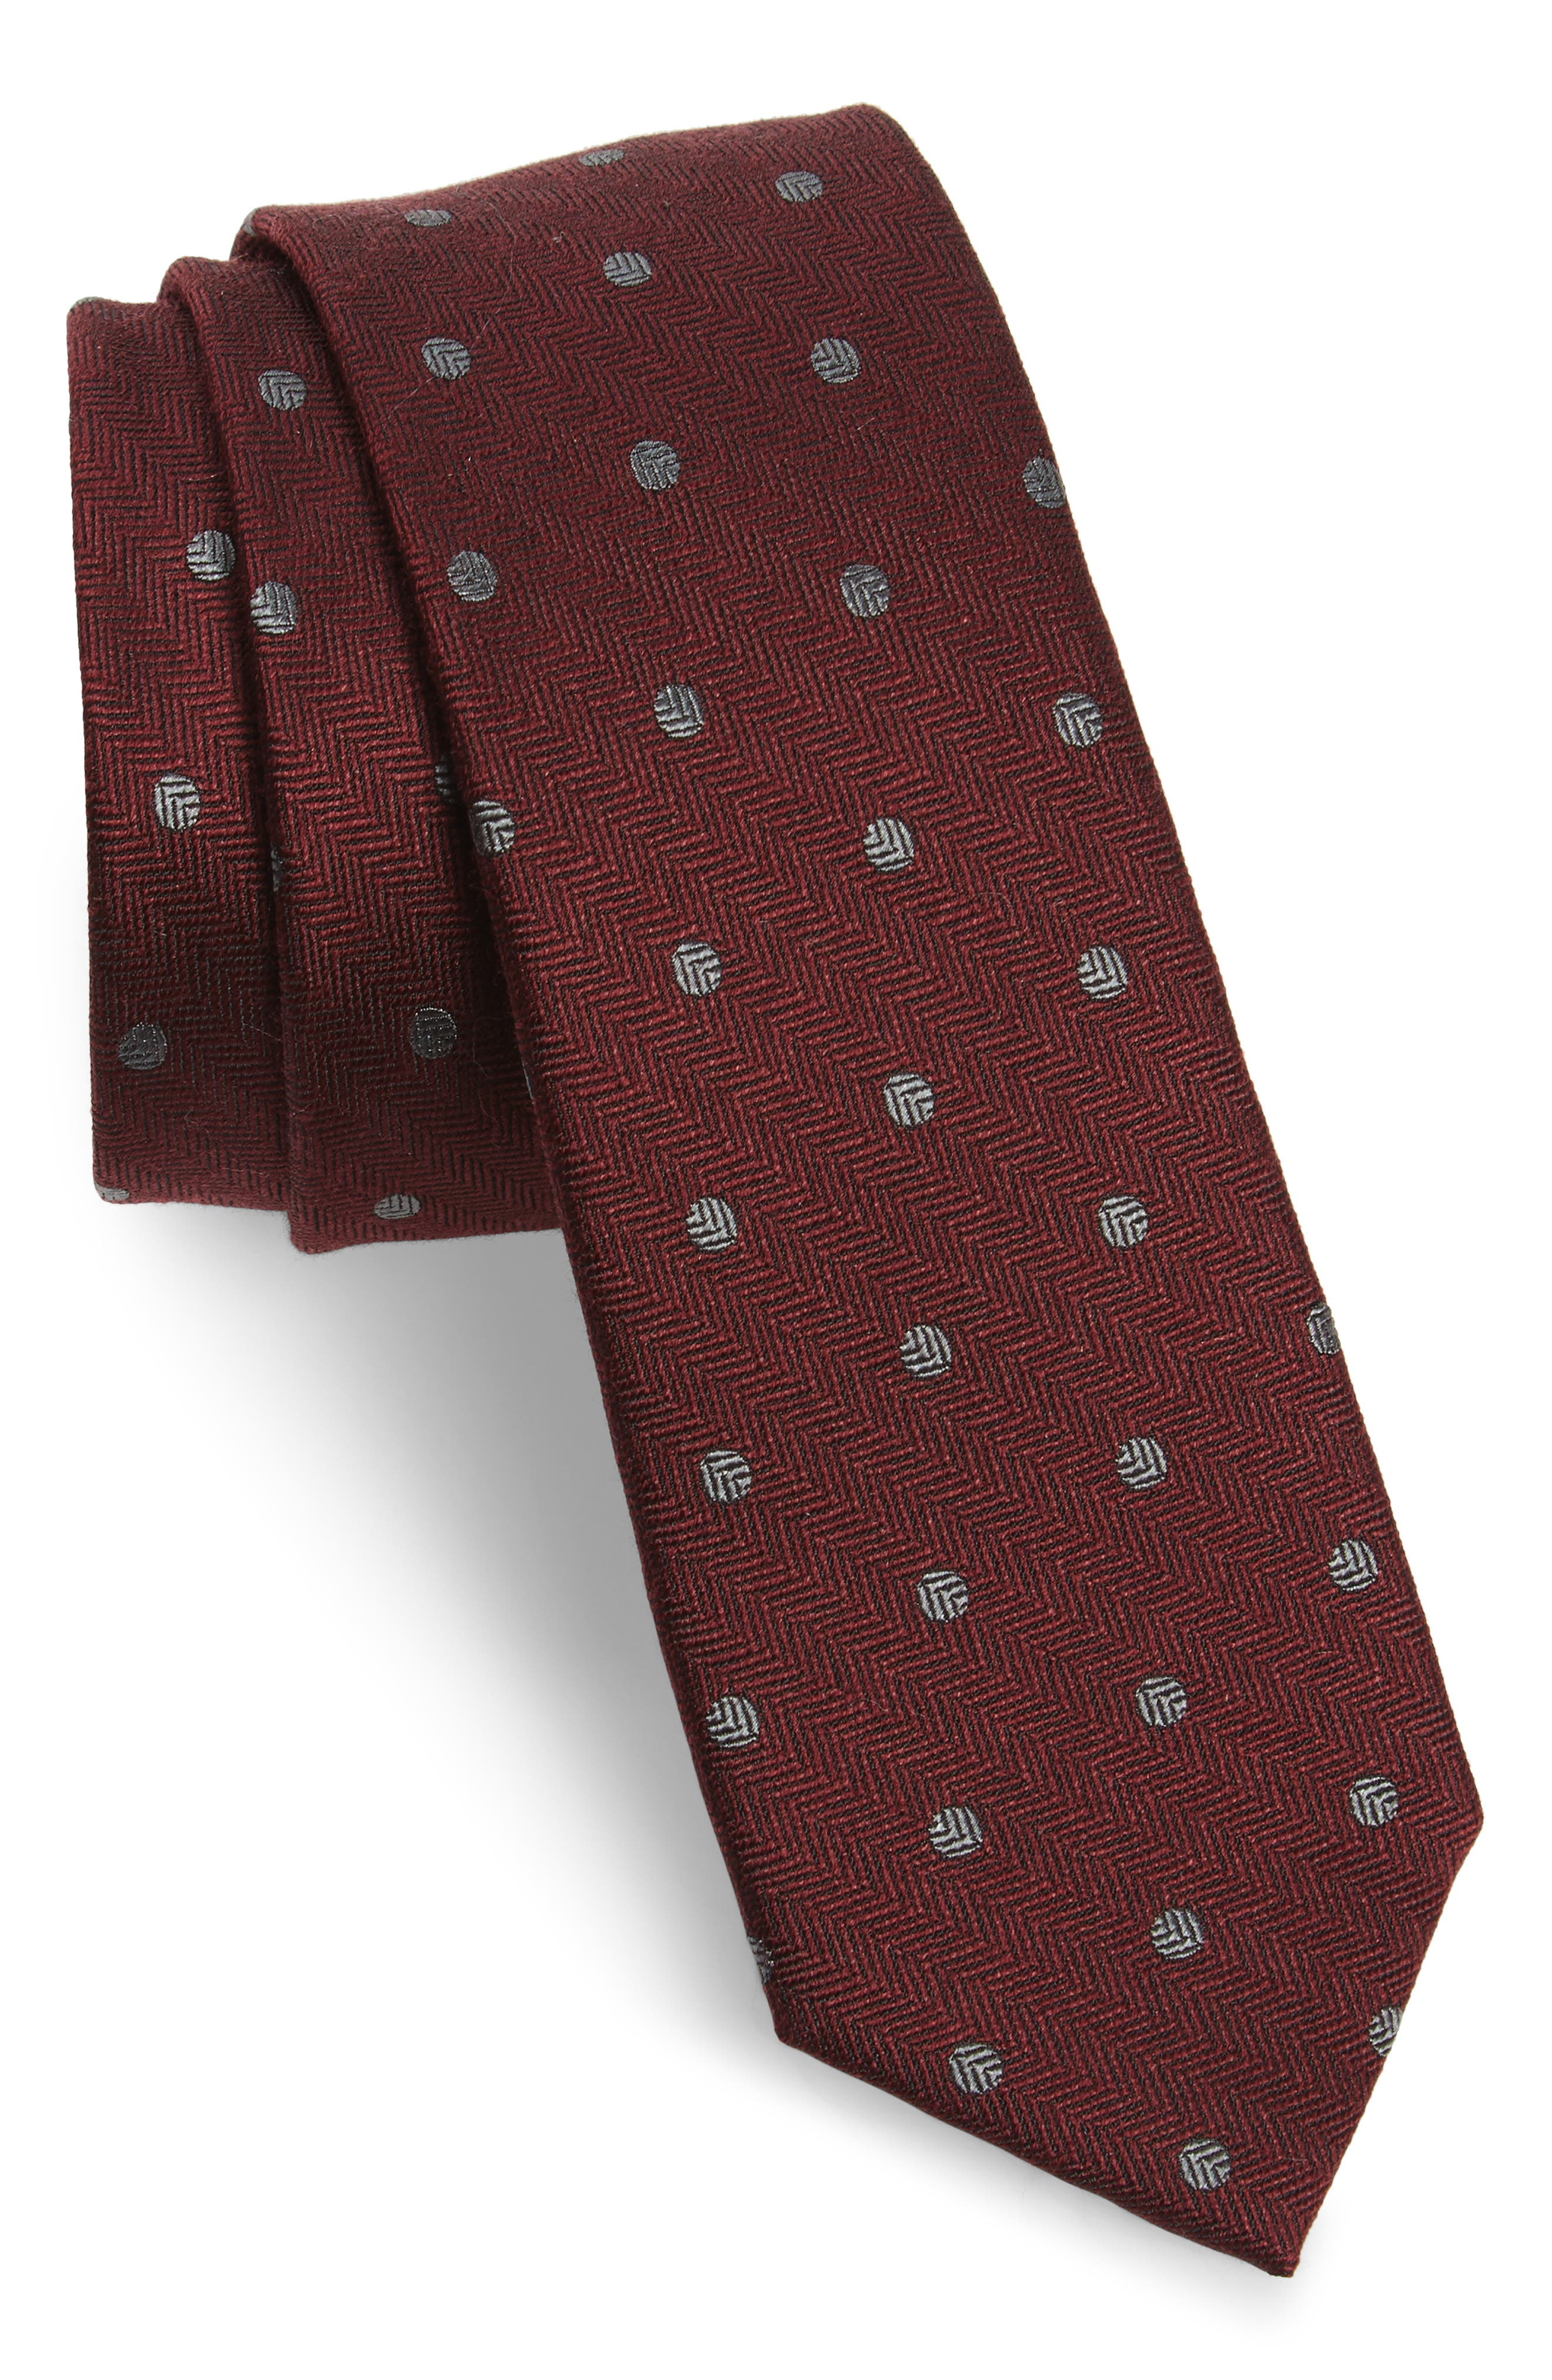 Main Image - The Tie Bar Dotted Hitch Silk & Wool Skinny Tie